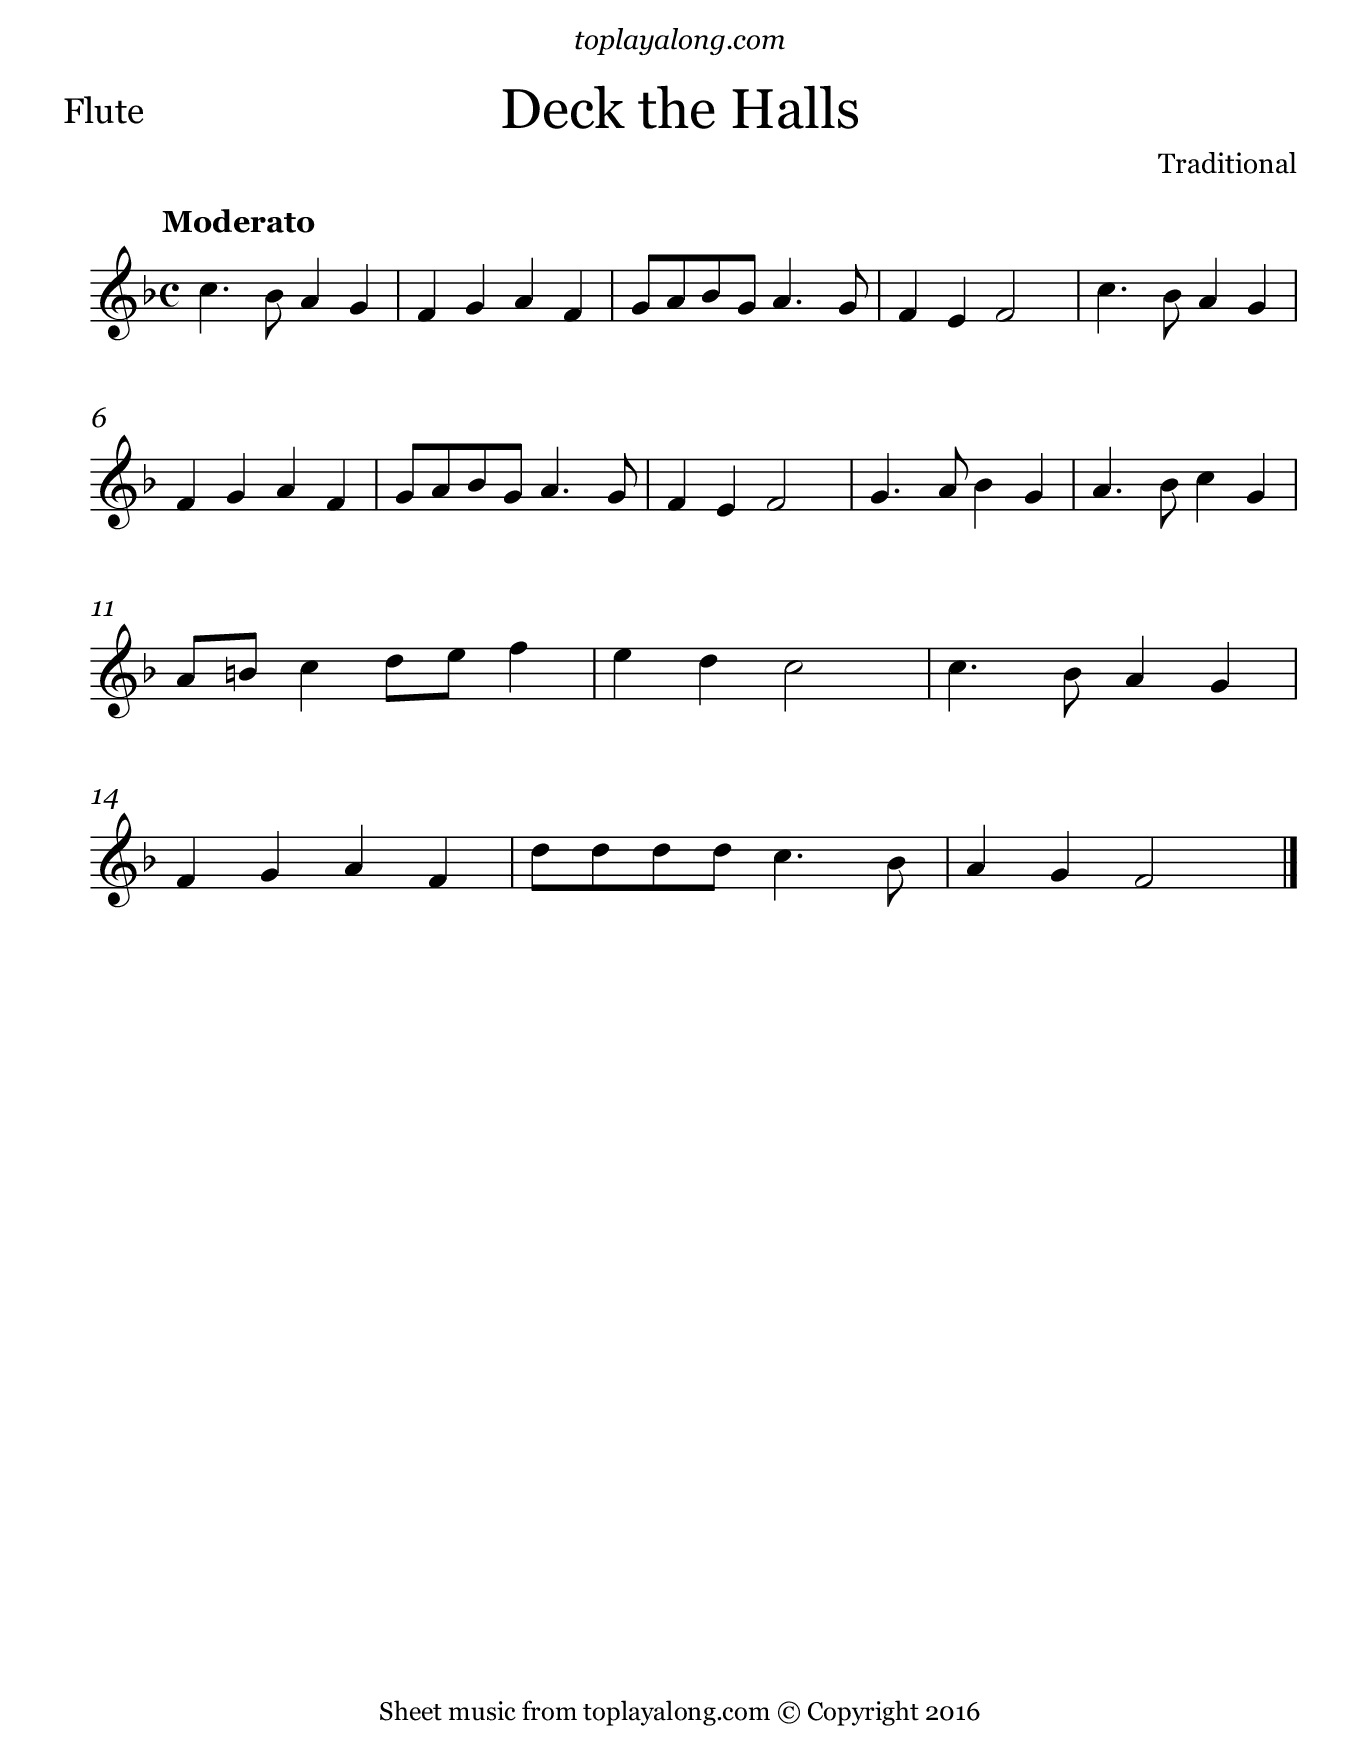 Deck the Halls. Sheet music for Flute, page 1.